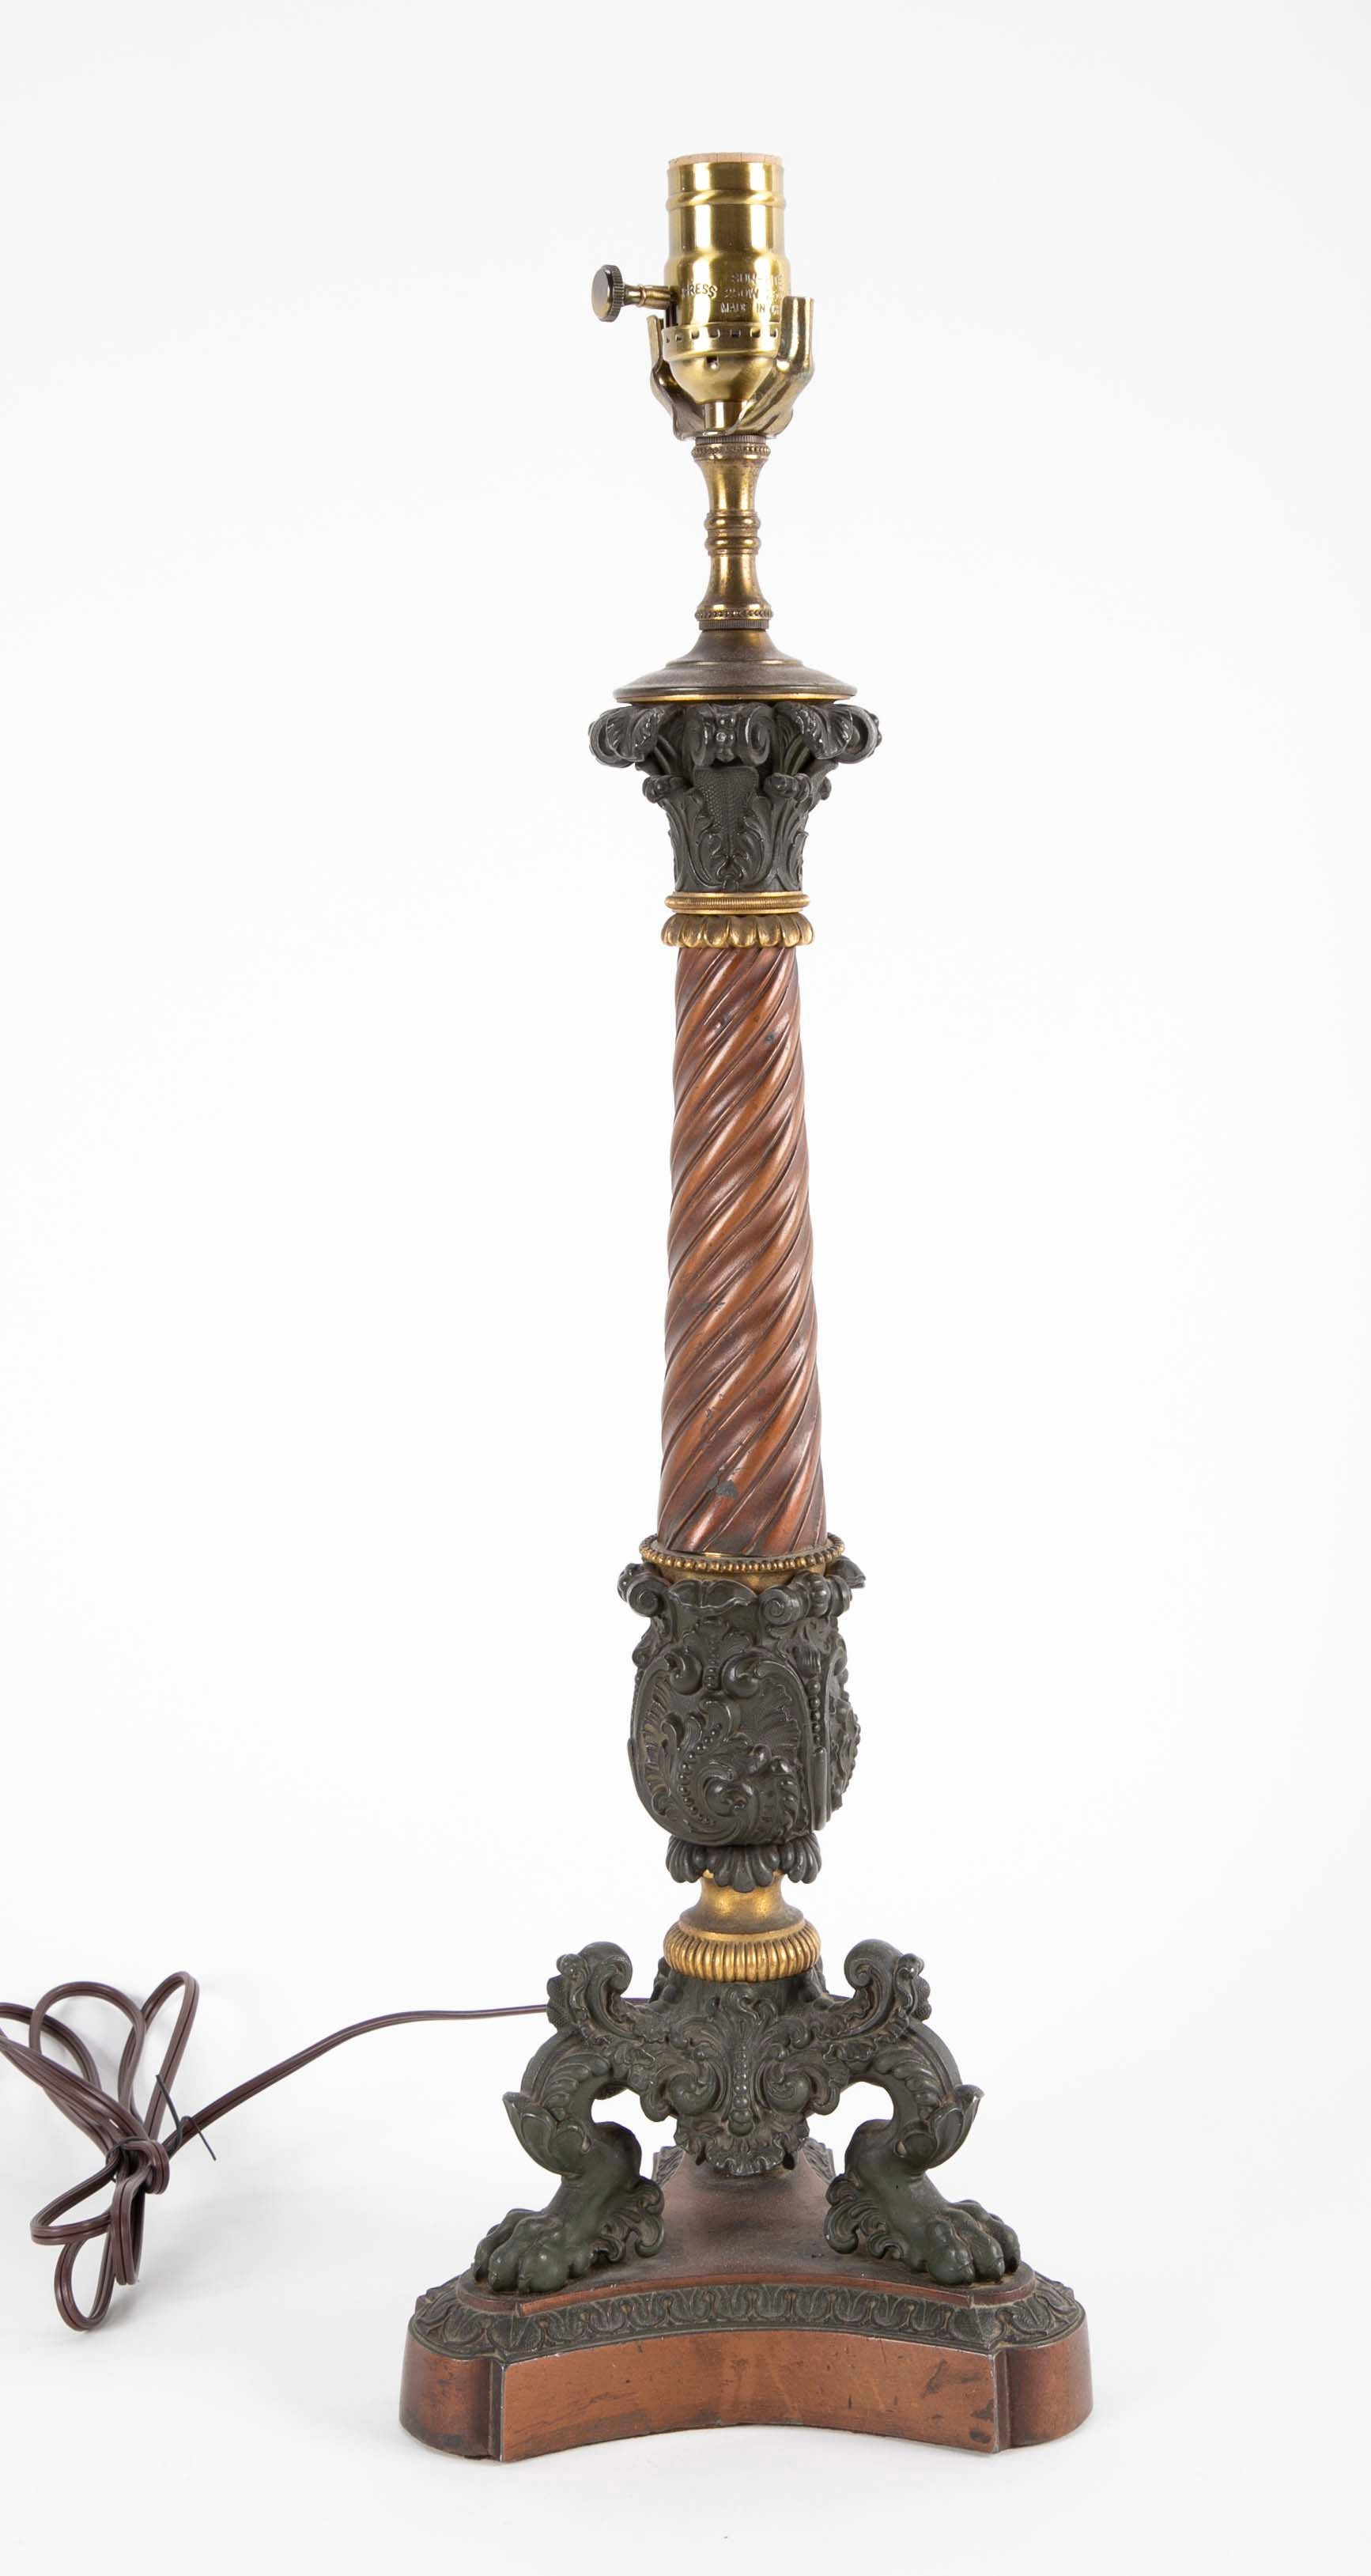 Patinated Bronze 2nd Empire Candelabra now a Lamp